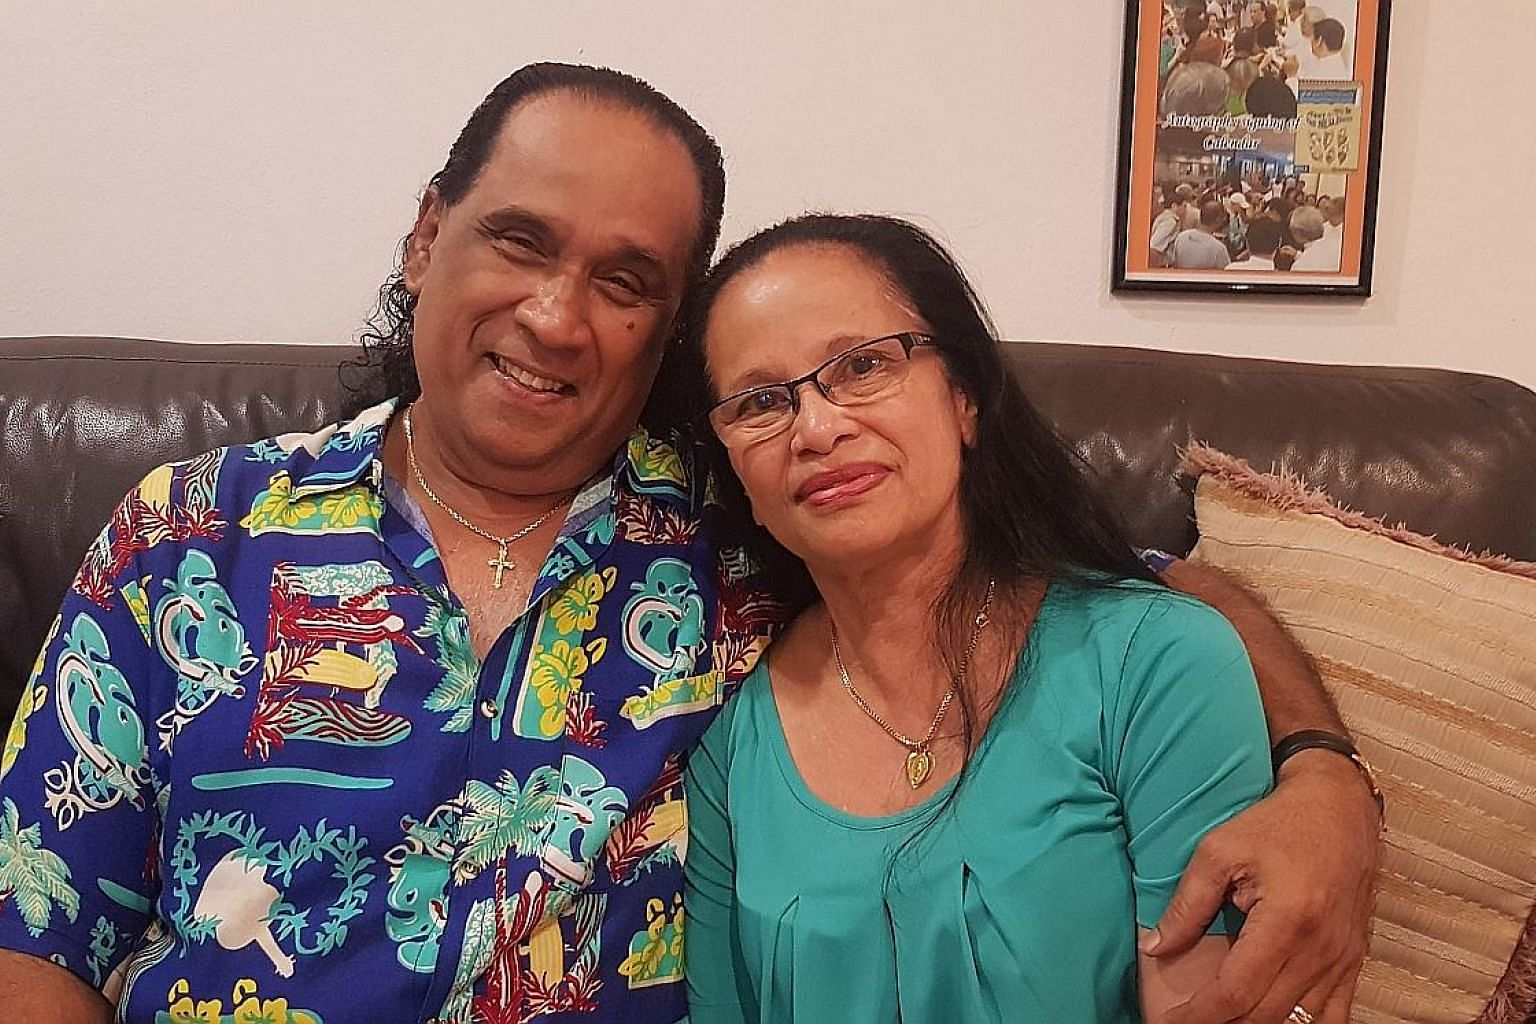 Entertainer Jerry Fernandez, 69, and his wife, Madam Mary Ann Oliveiro, 66, have been married for 39 years. When he did shows abroad, he rang her almost every day.